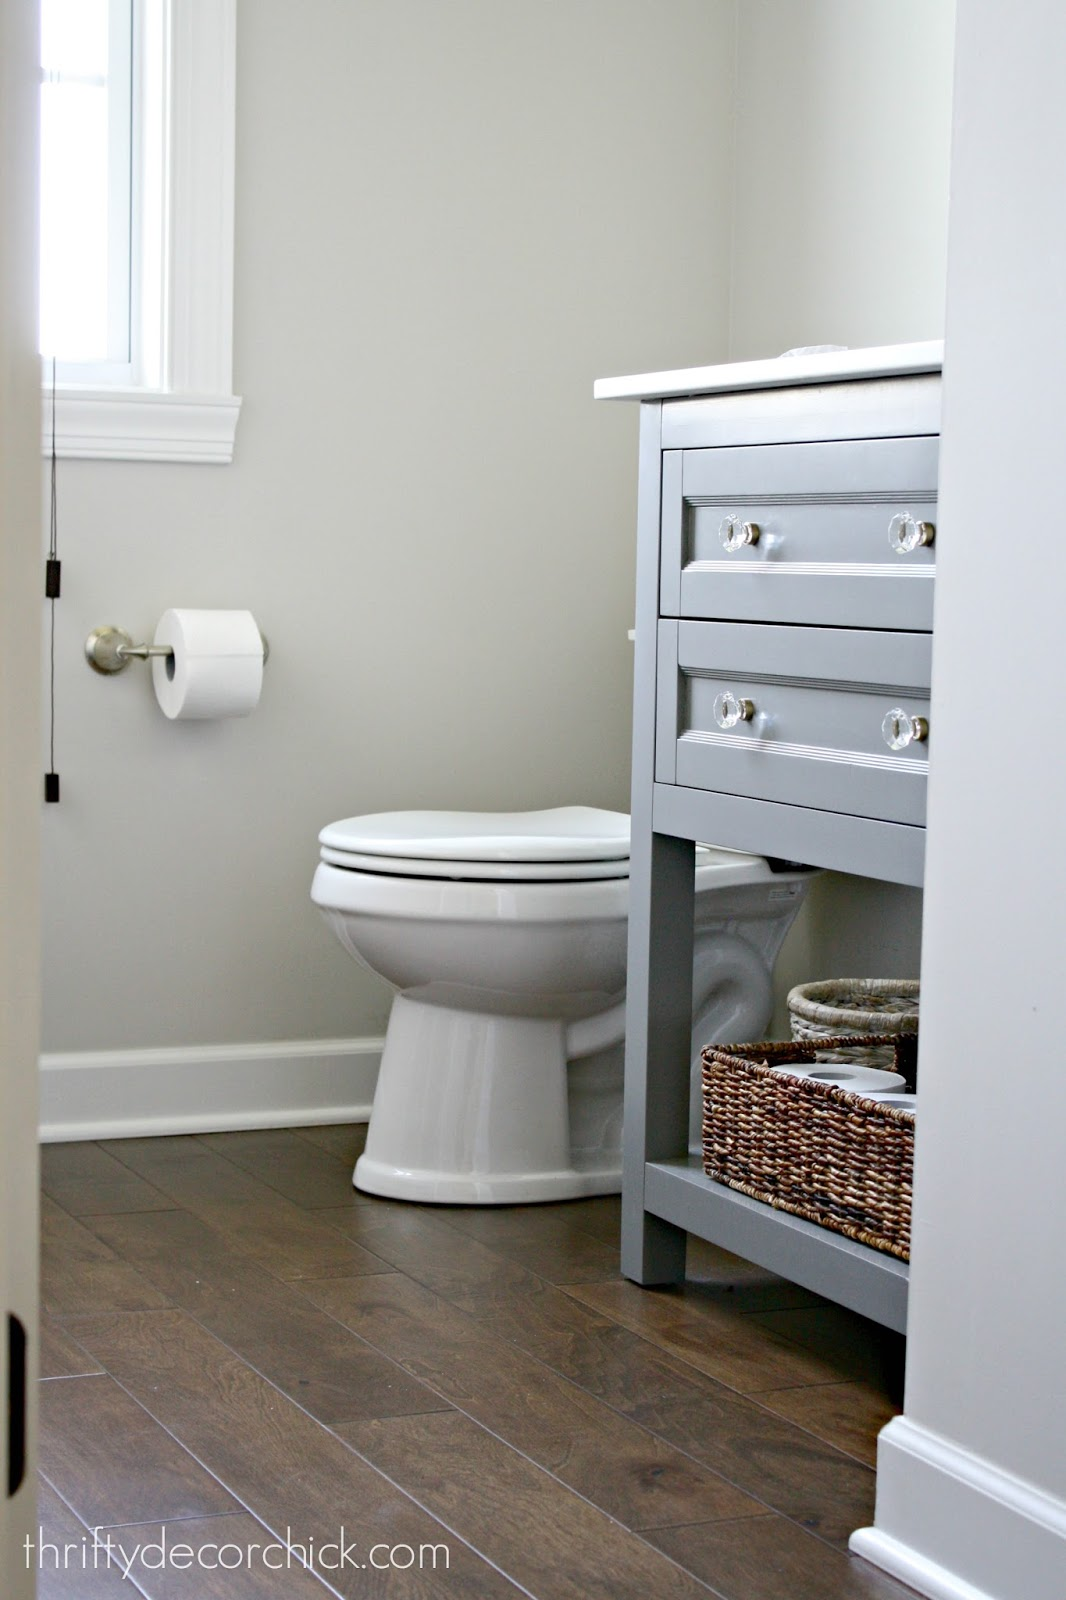 Dark wood floors, gray vanity bathroom